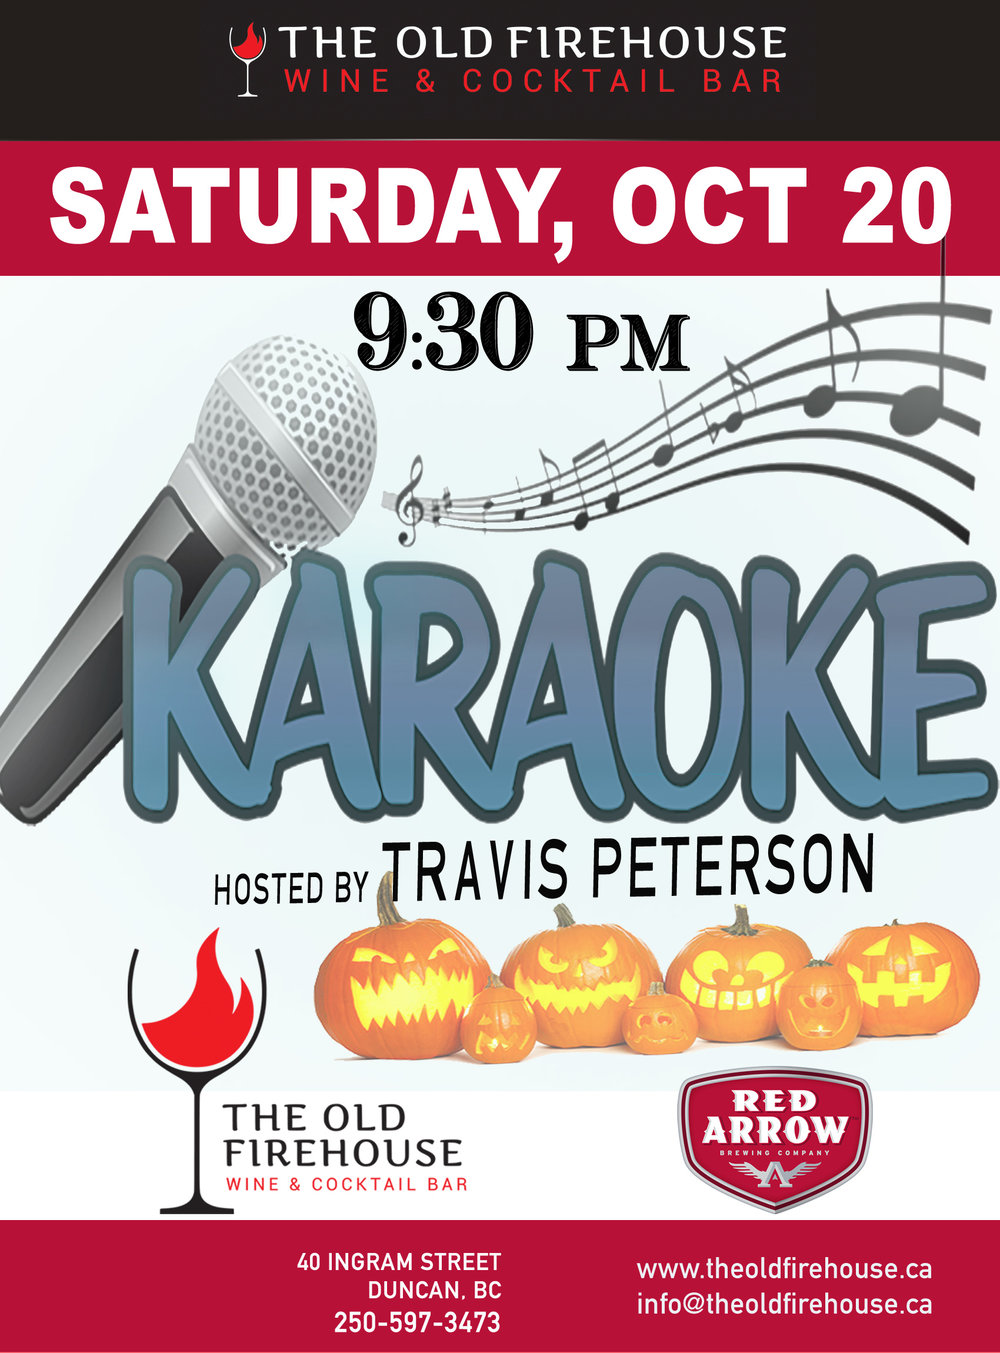 karaoke-poster-red-arrow-oct-20.jpg